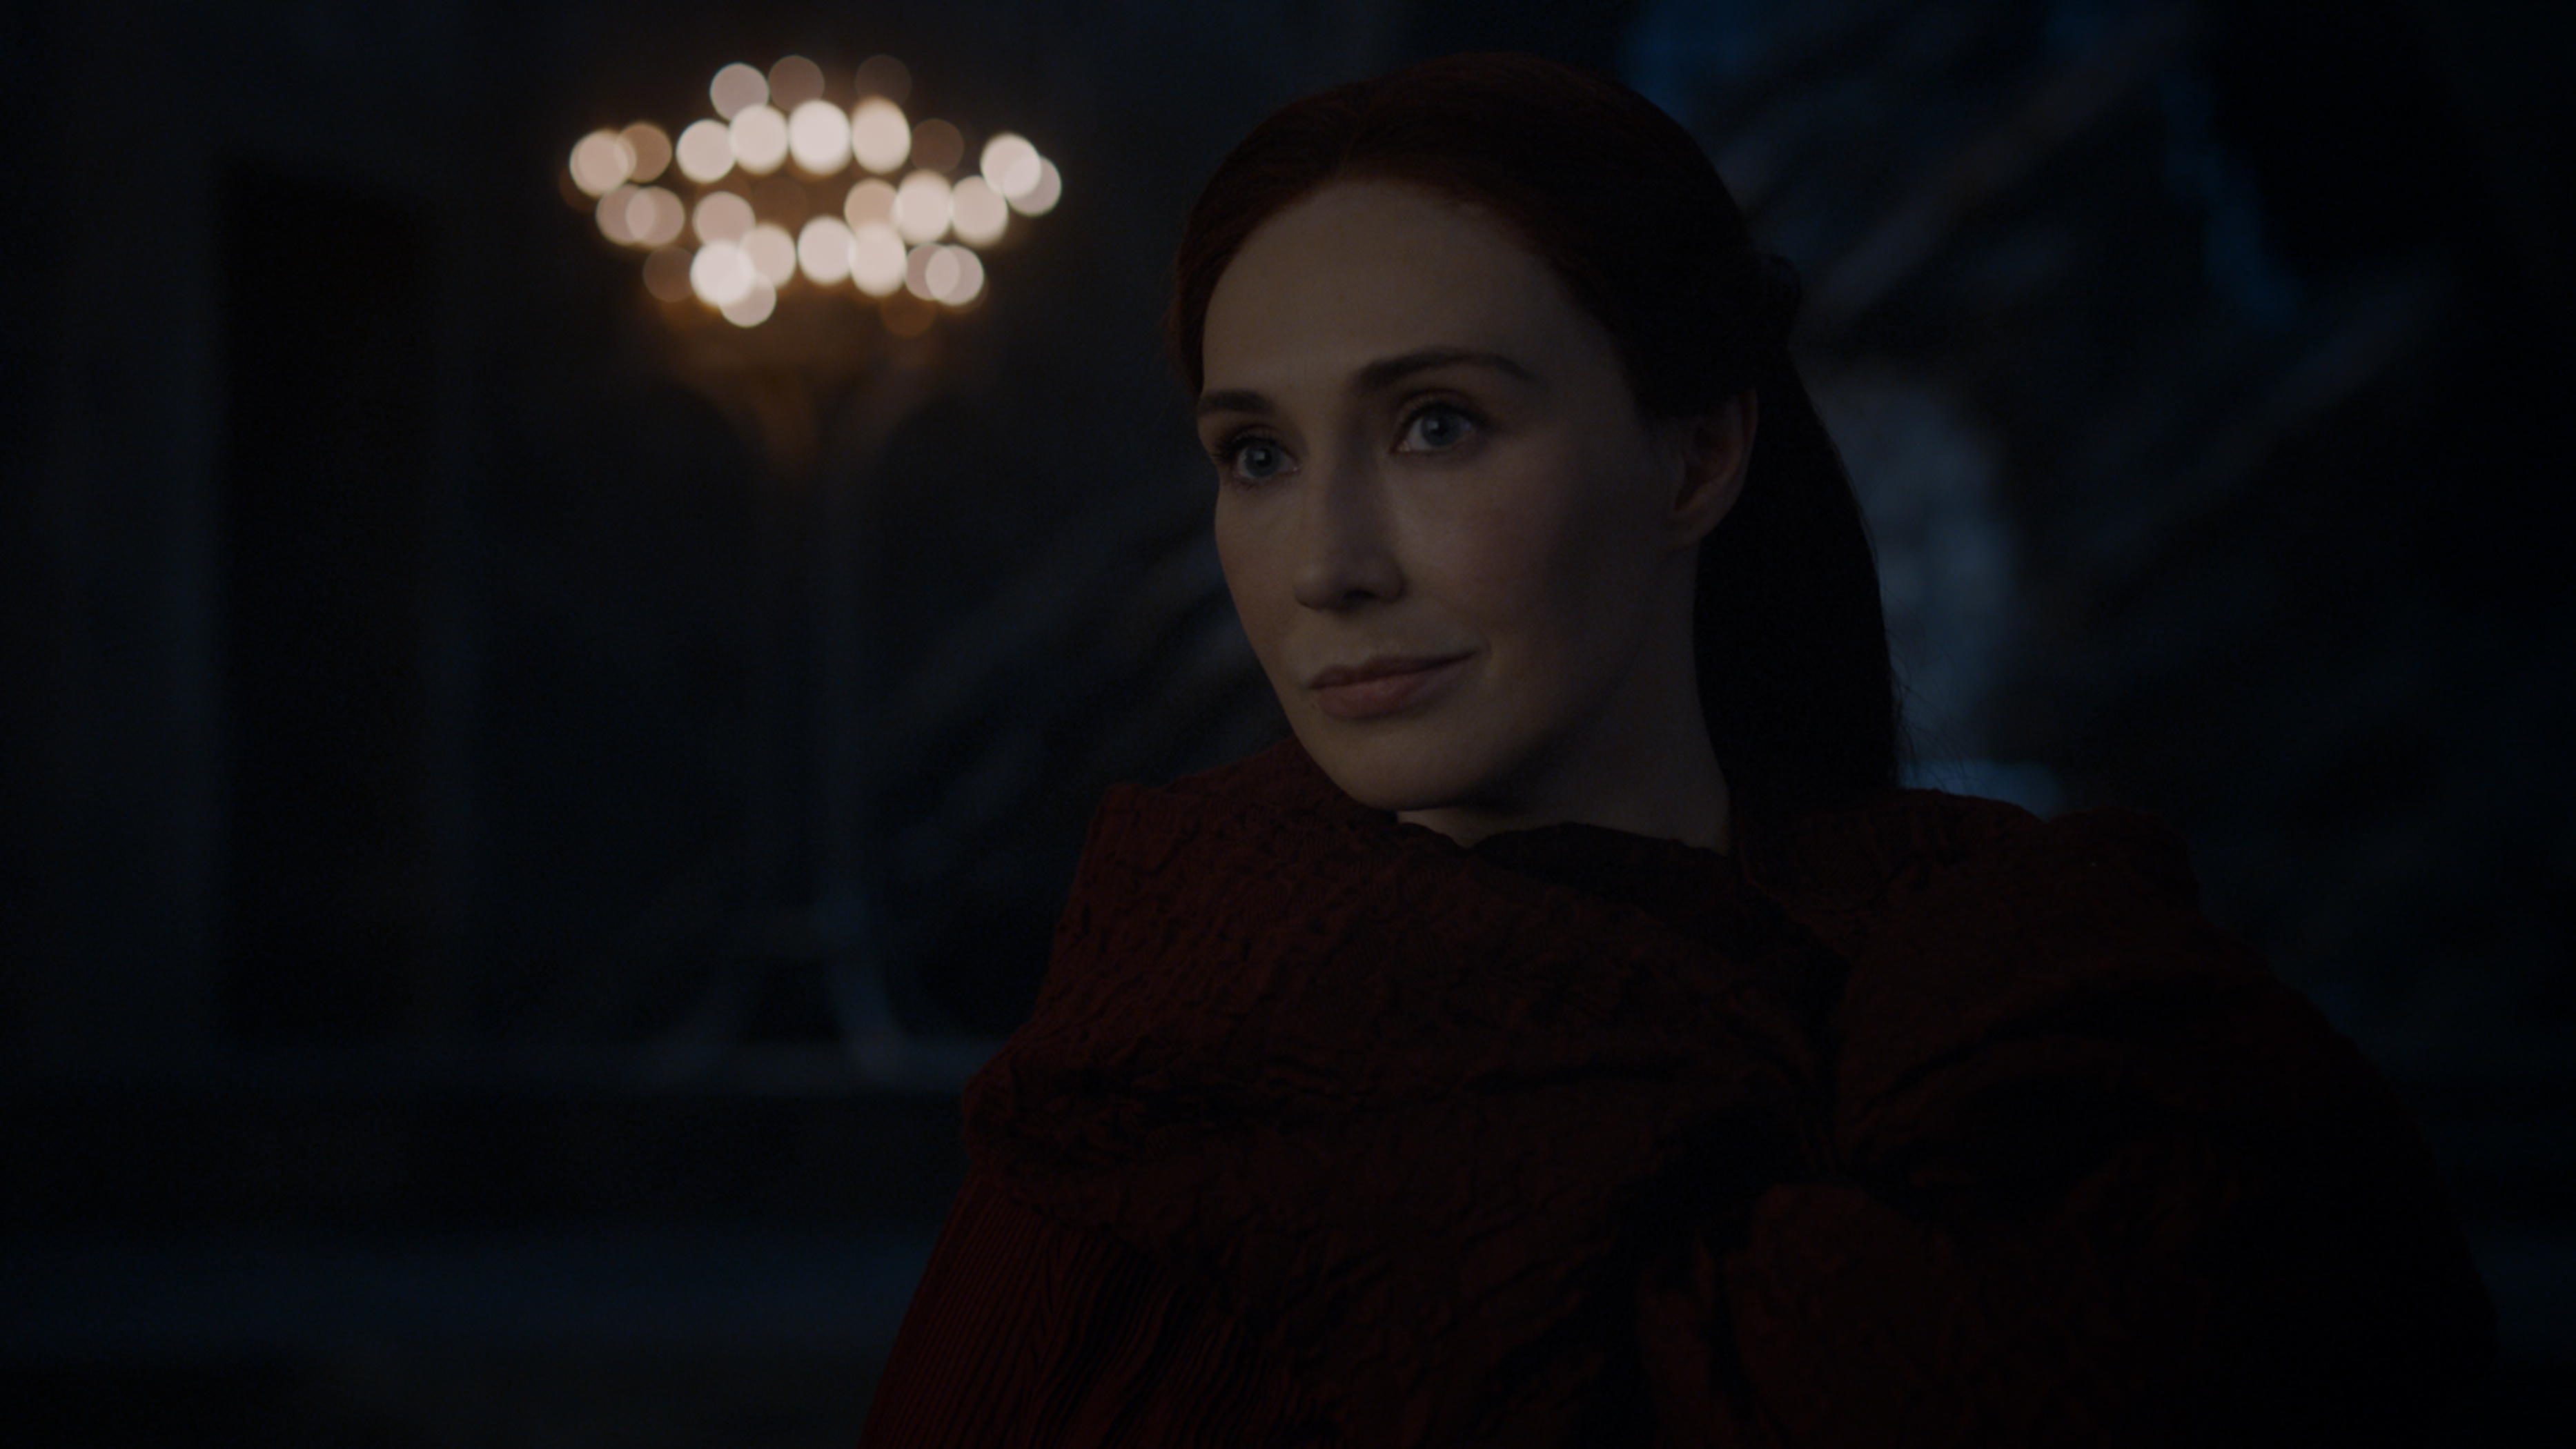 07f91a6657d54dcafedf45a80fd942a4f060bbbfb33bd664c400fdb5a92bd730 Recapping Game of Thrones: Stormborn Sees Through Ice and Fire, Pleasure and Pain